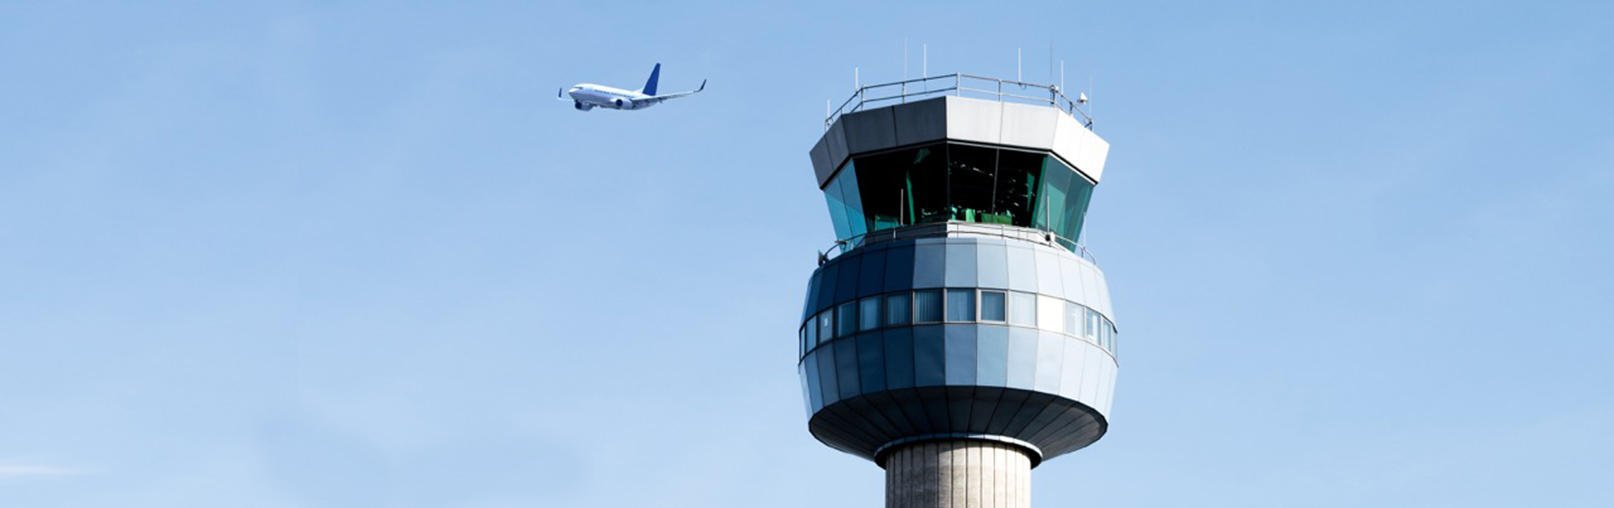 silouette of departing aircraft by control tower